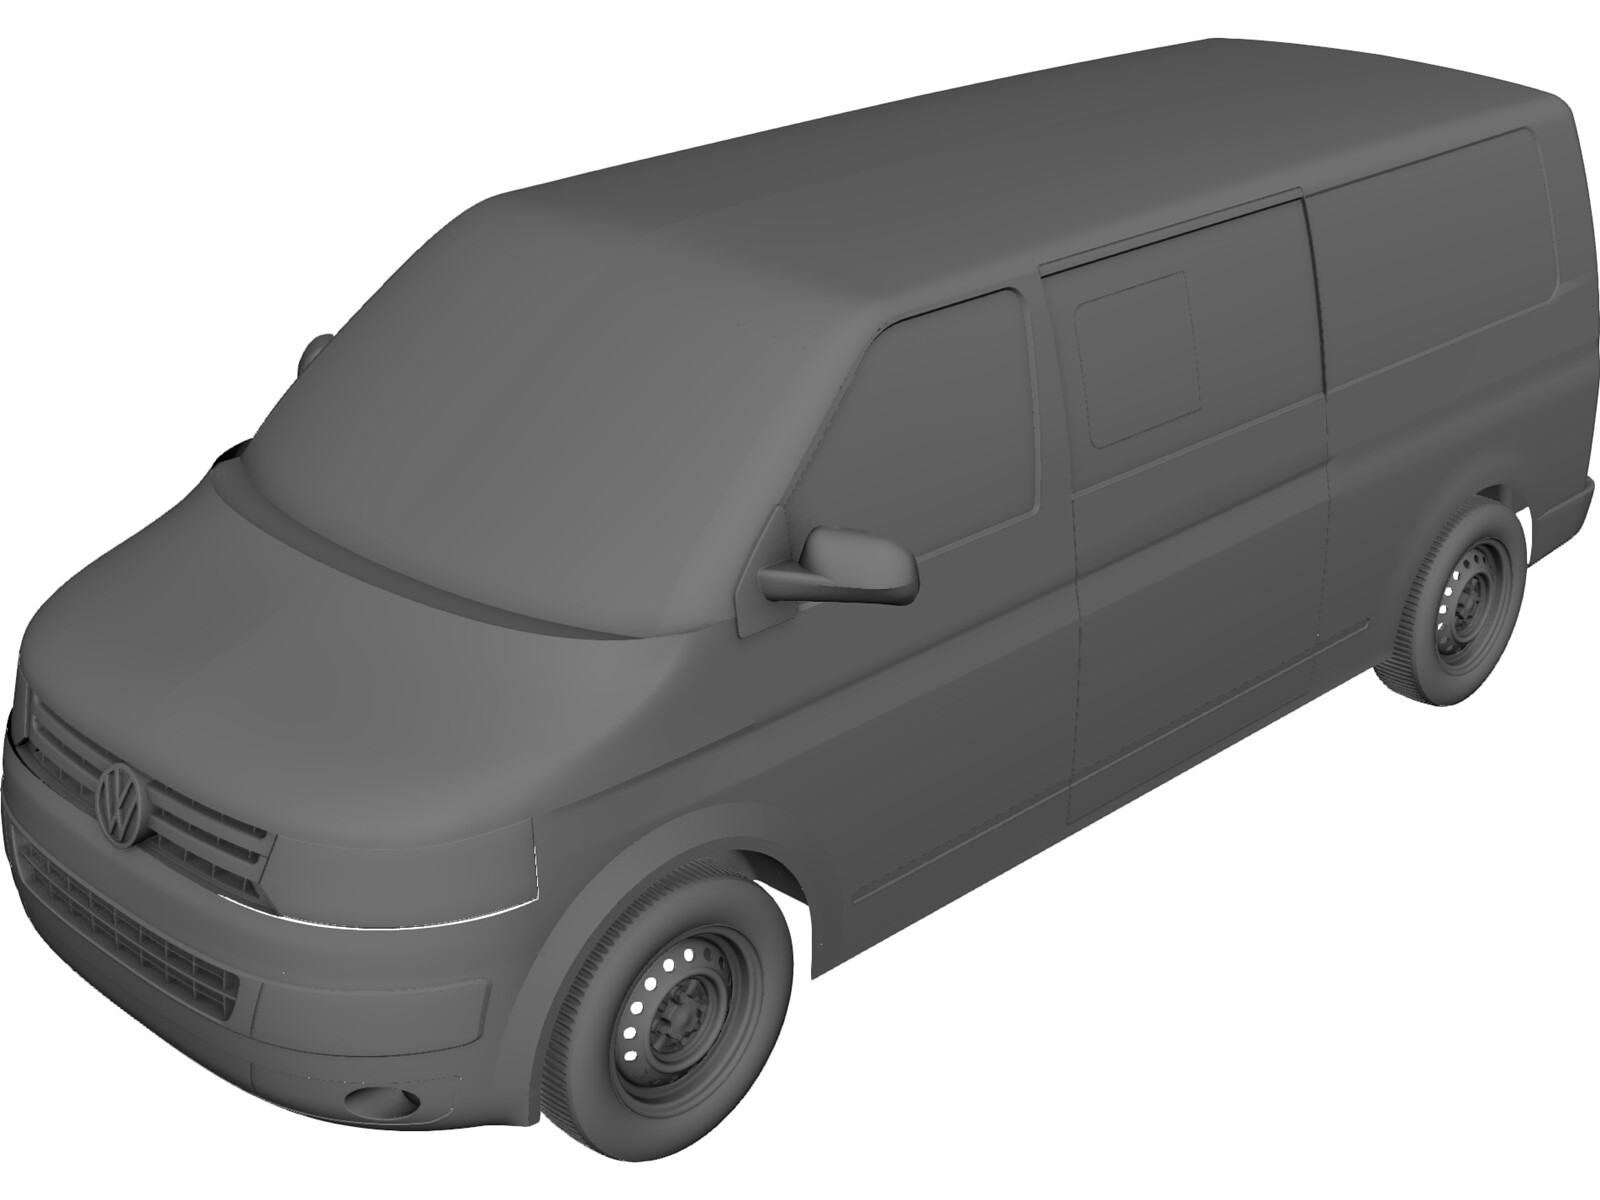 Volkswagen Transporter T5 3D Model